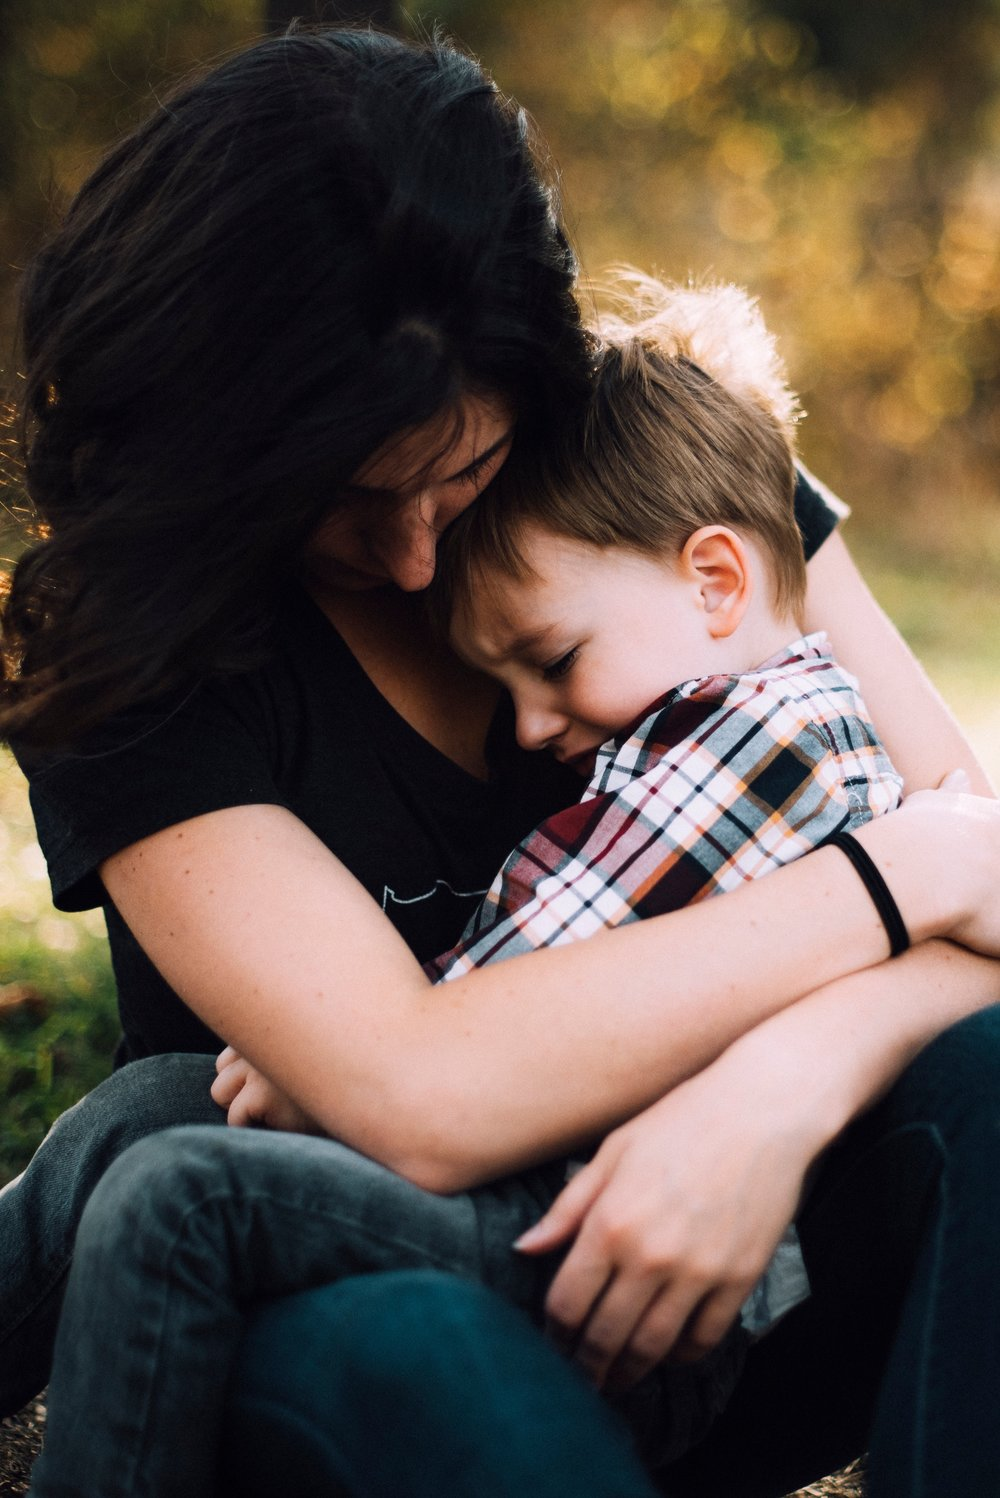 Connecting with your child eases your anxiety